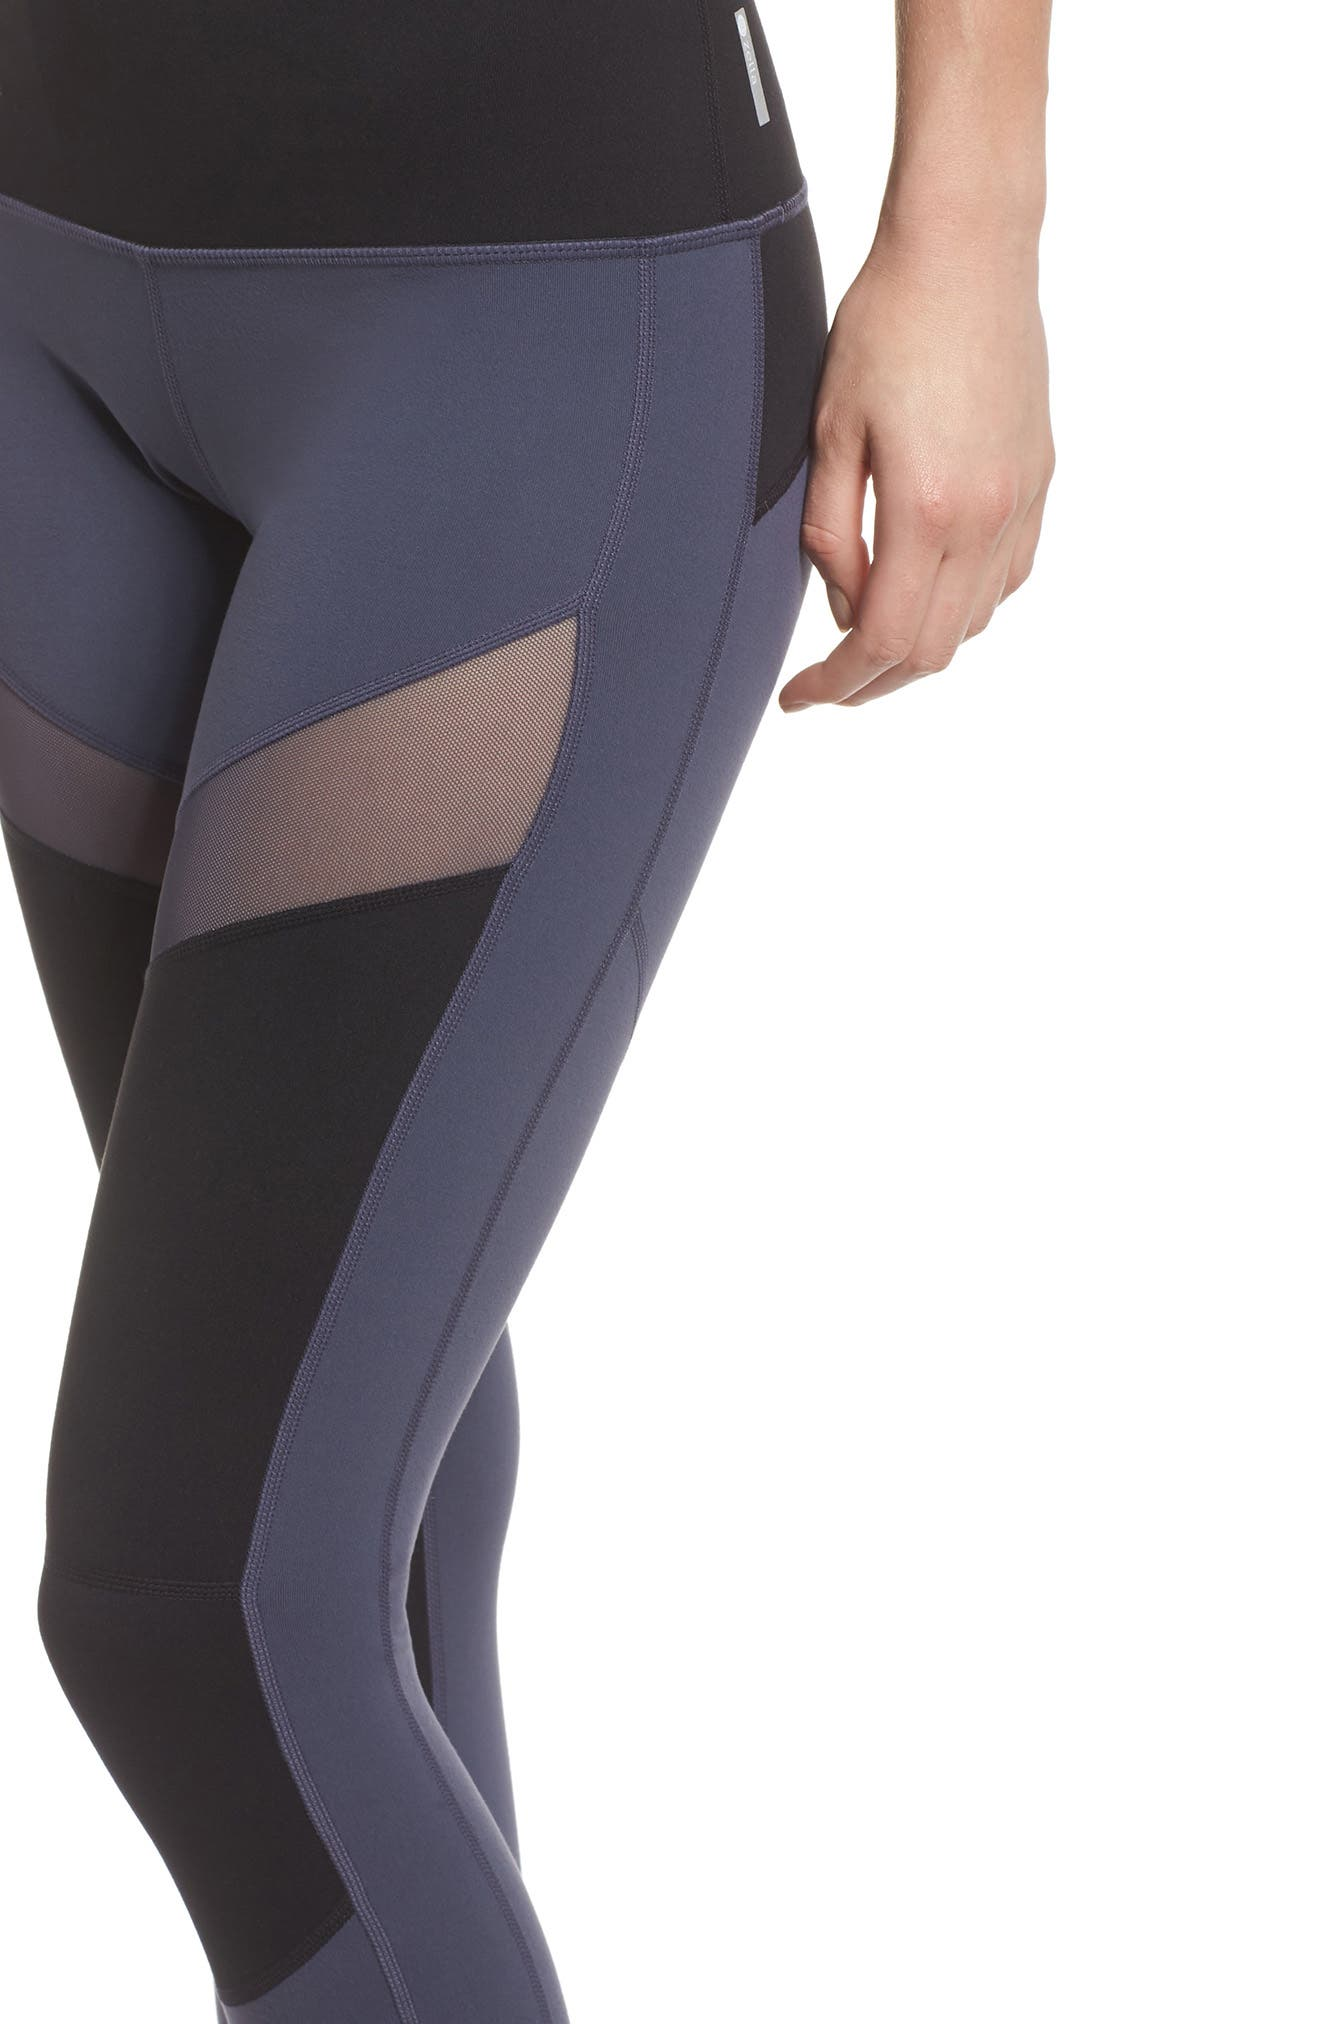 Autumn Block Ankle Leggings,                             Alternate thumbnail 4, color,                             021